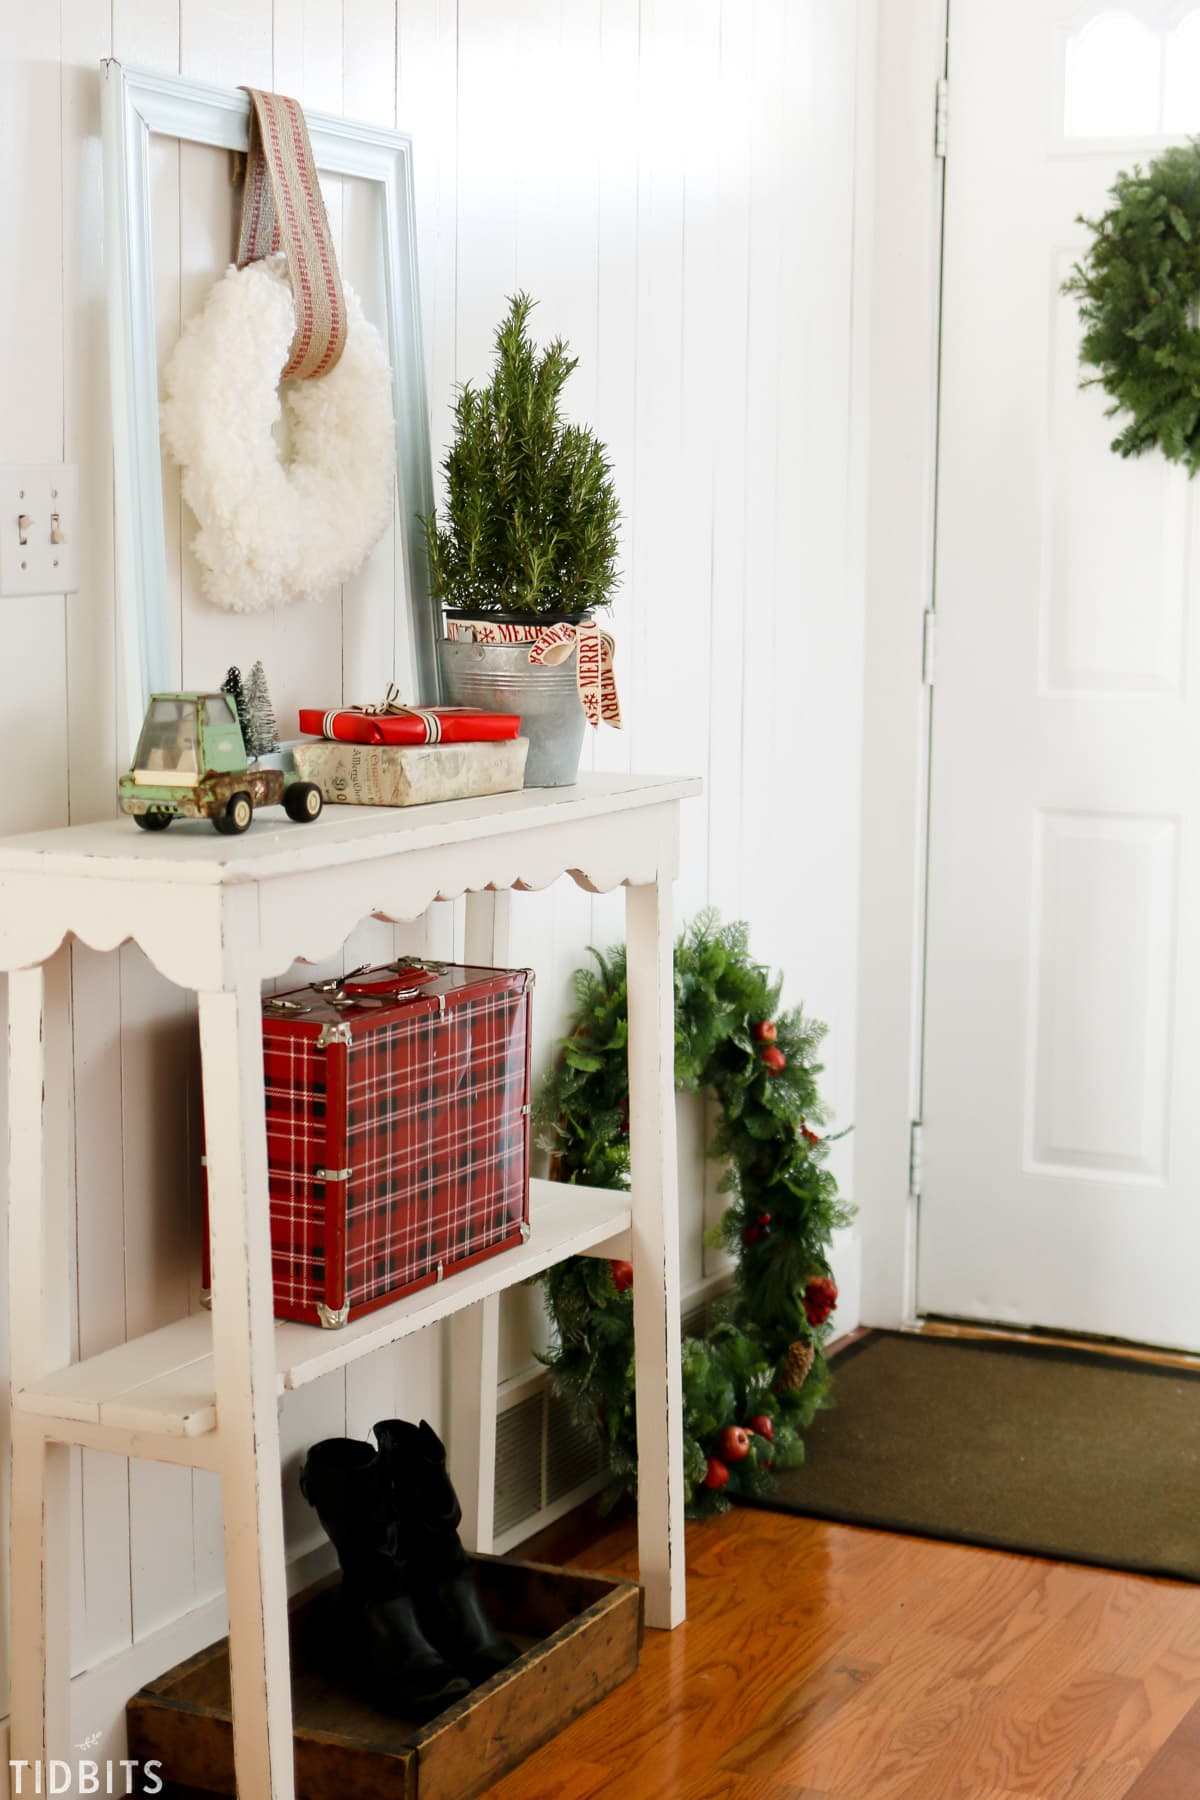 6 Tips for Changing Your Christmas Theme